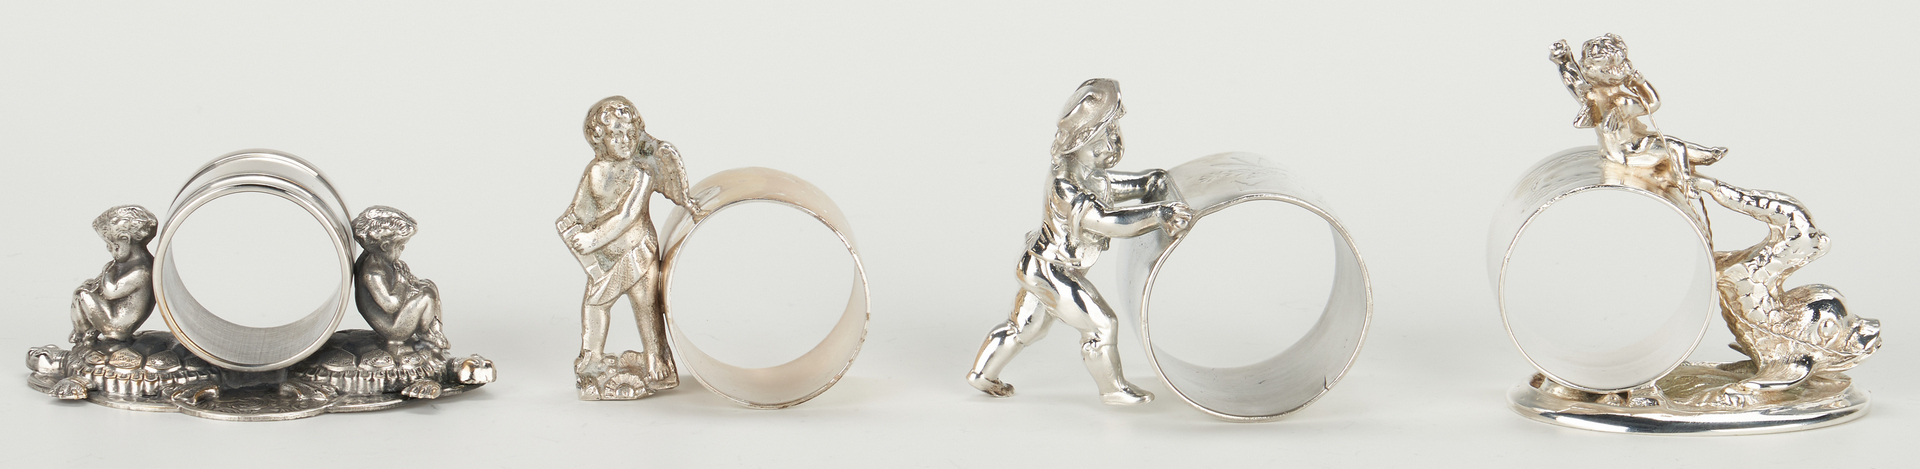 Lot 250: 13 Silverplated Napkin Rings incl. Figural Children